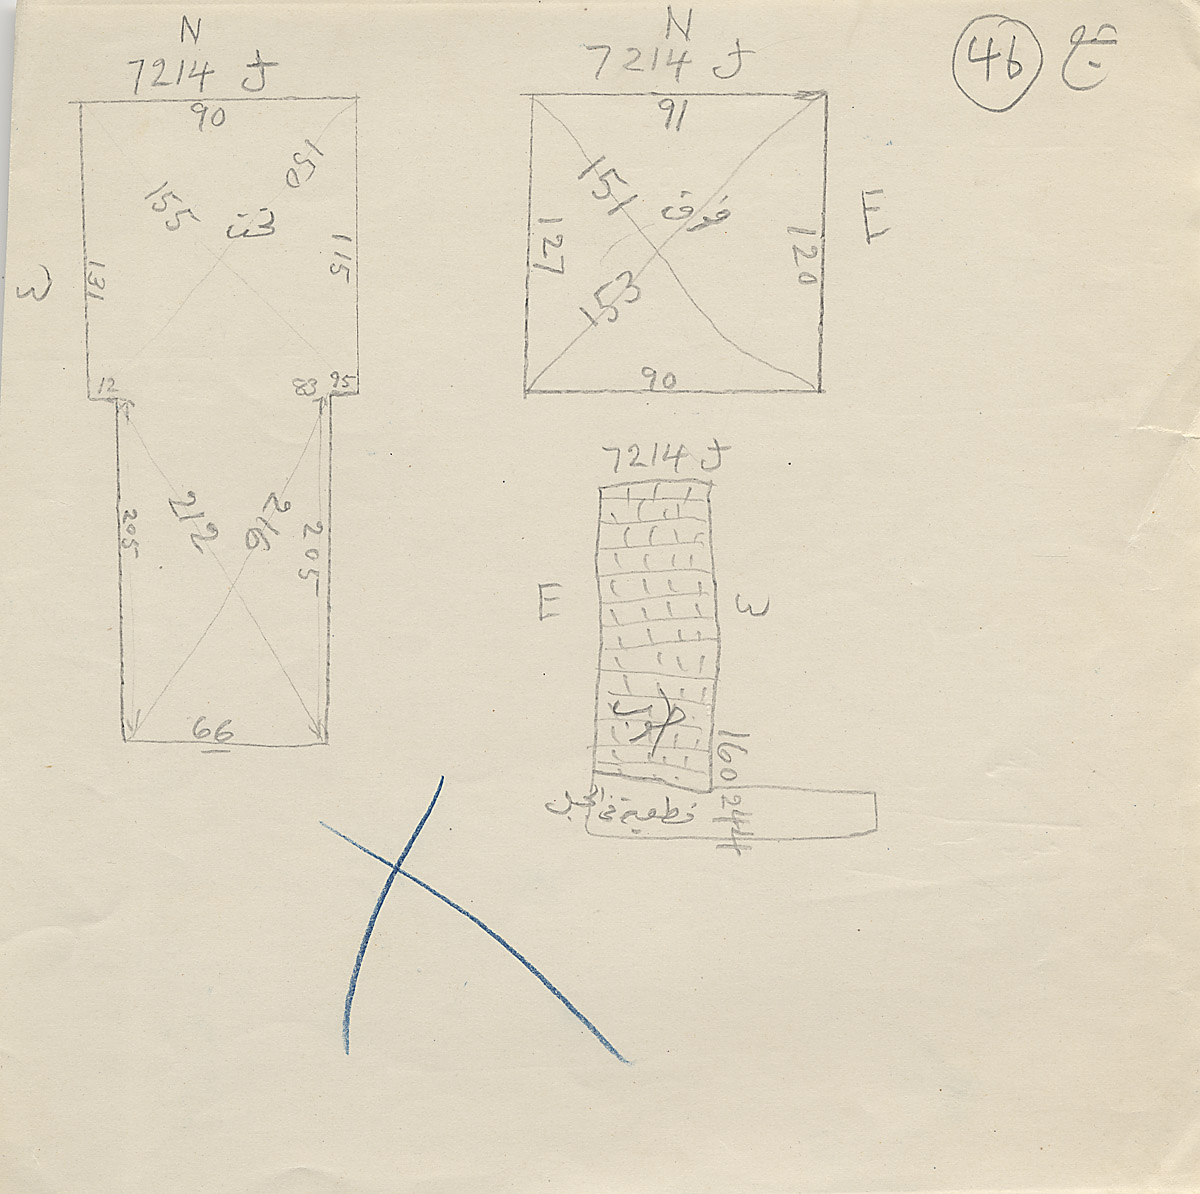 Maps and plans: G 7214, Shaft J